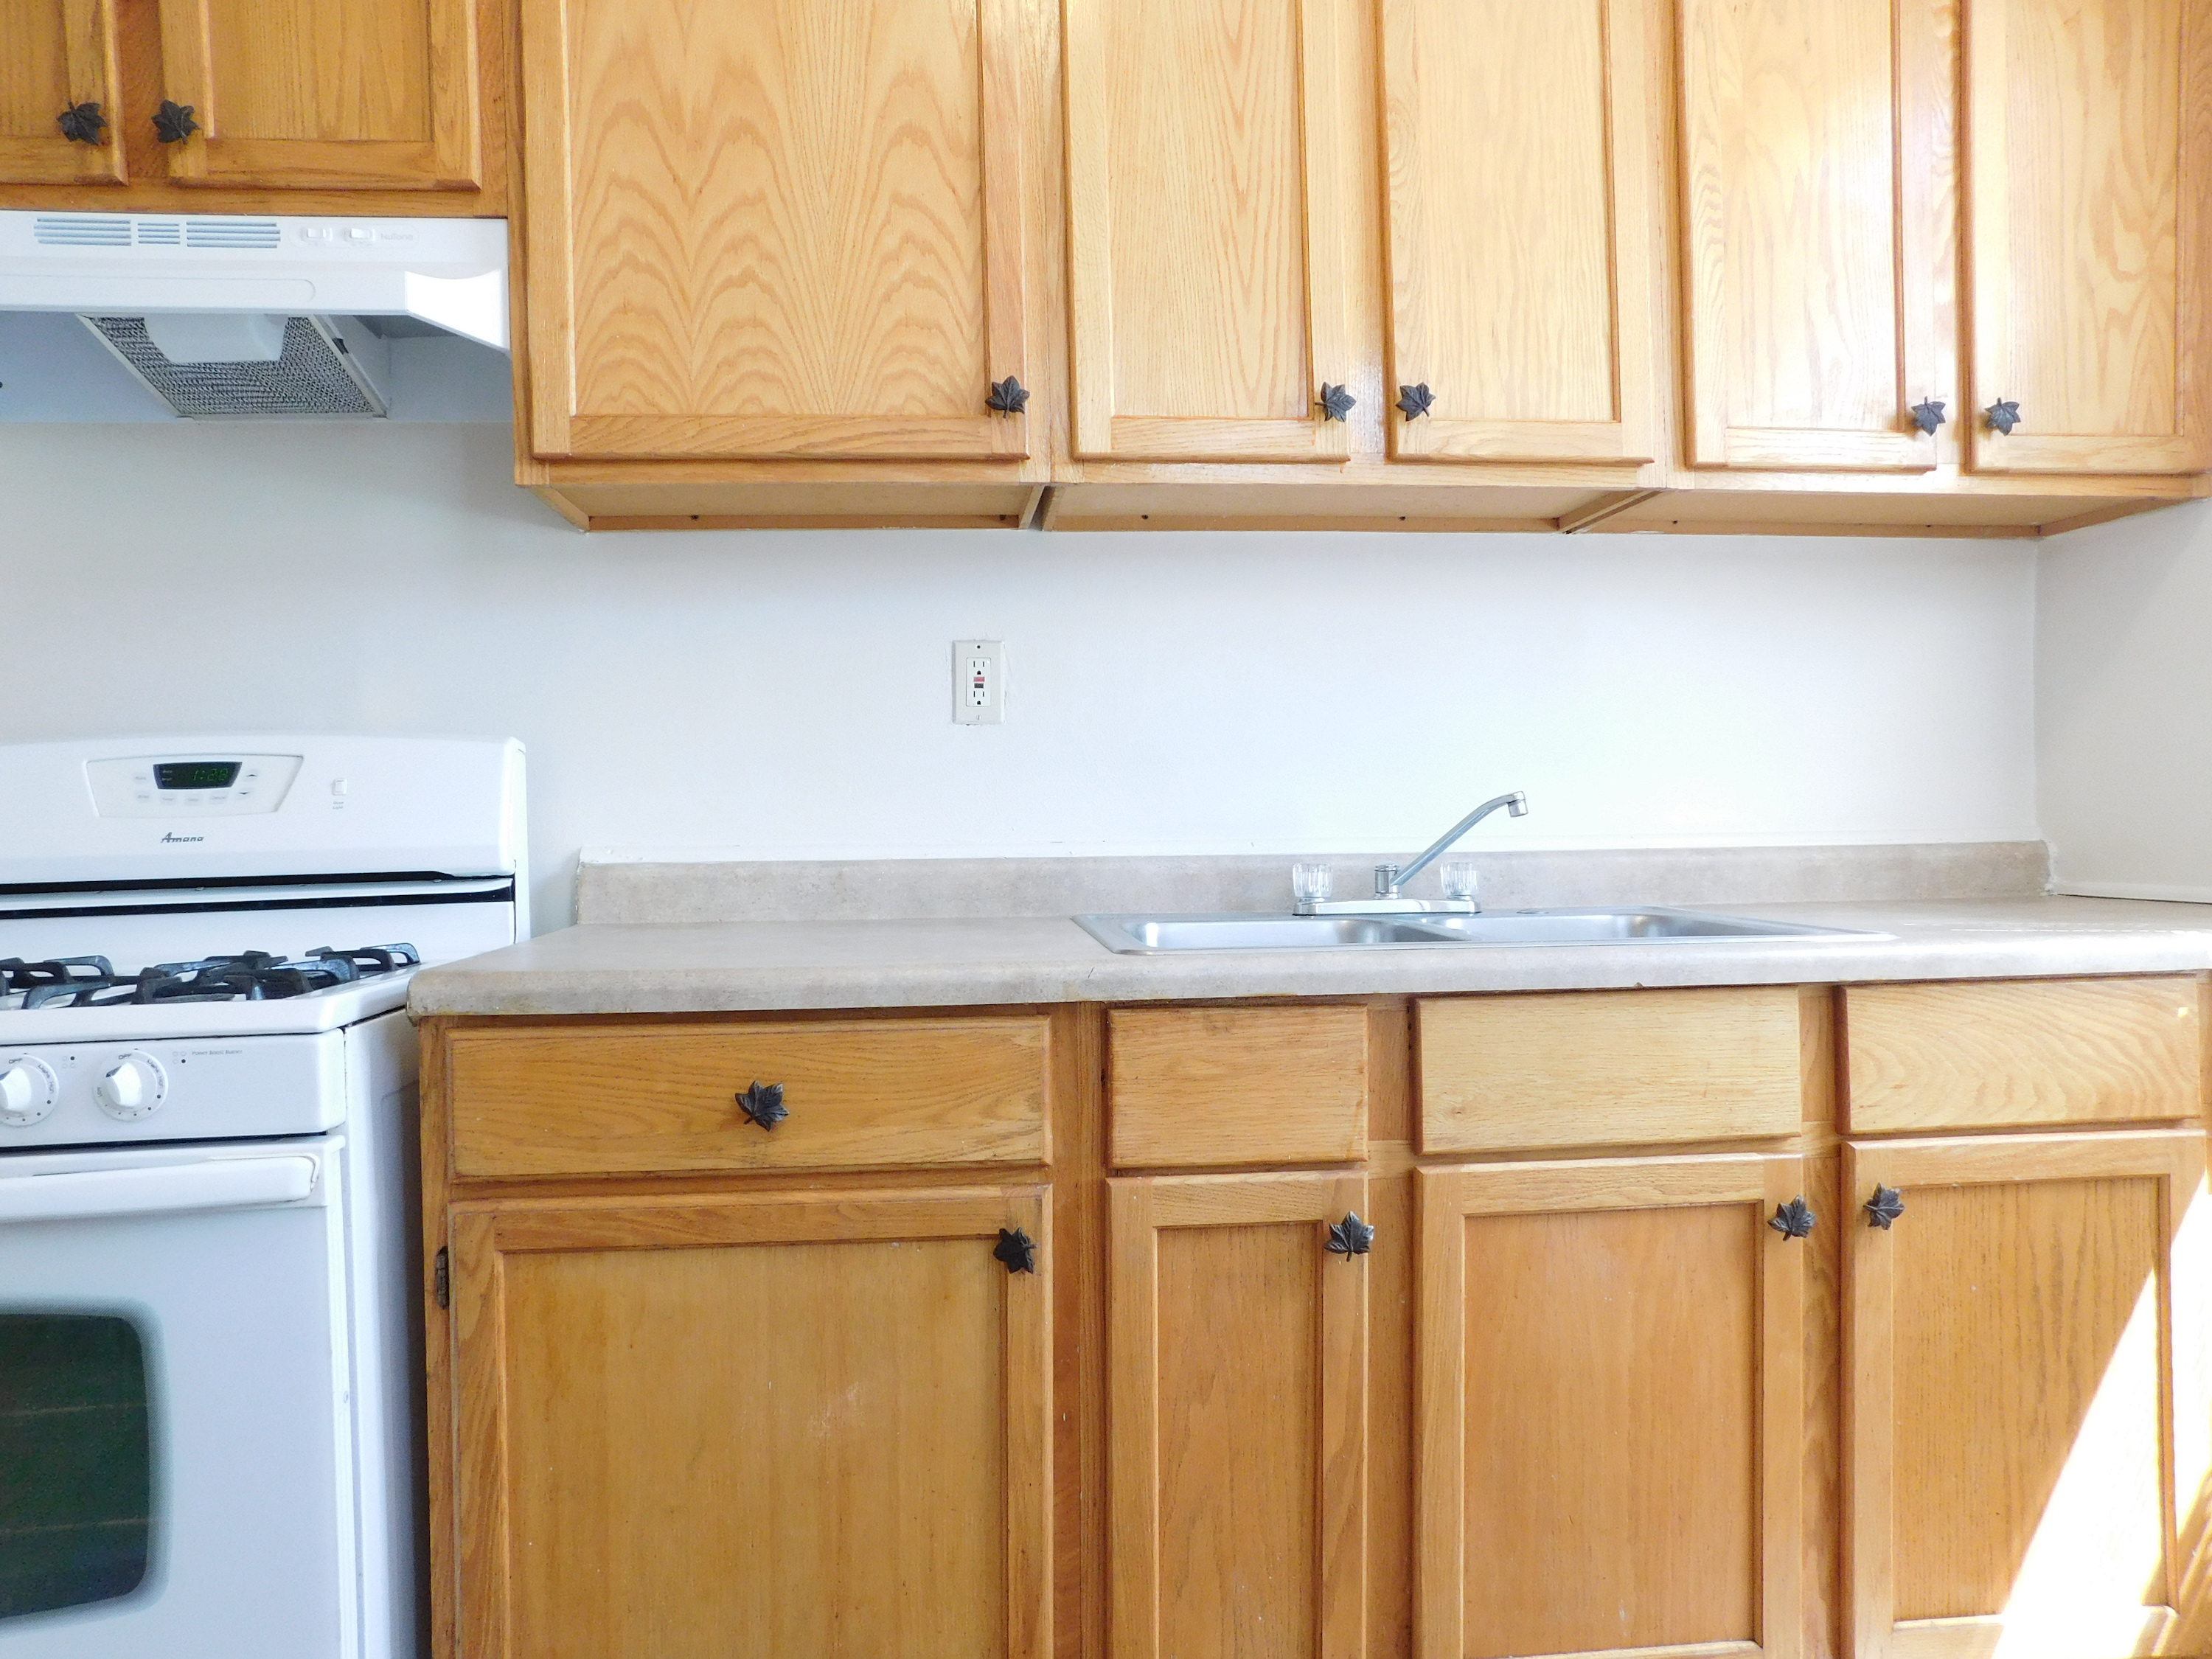 Austin Chicago 2 bedroom apartment at 5701 W Huron, Chicago, IL. 60644 - Kitchen